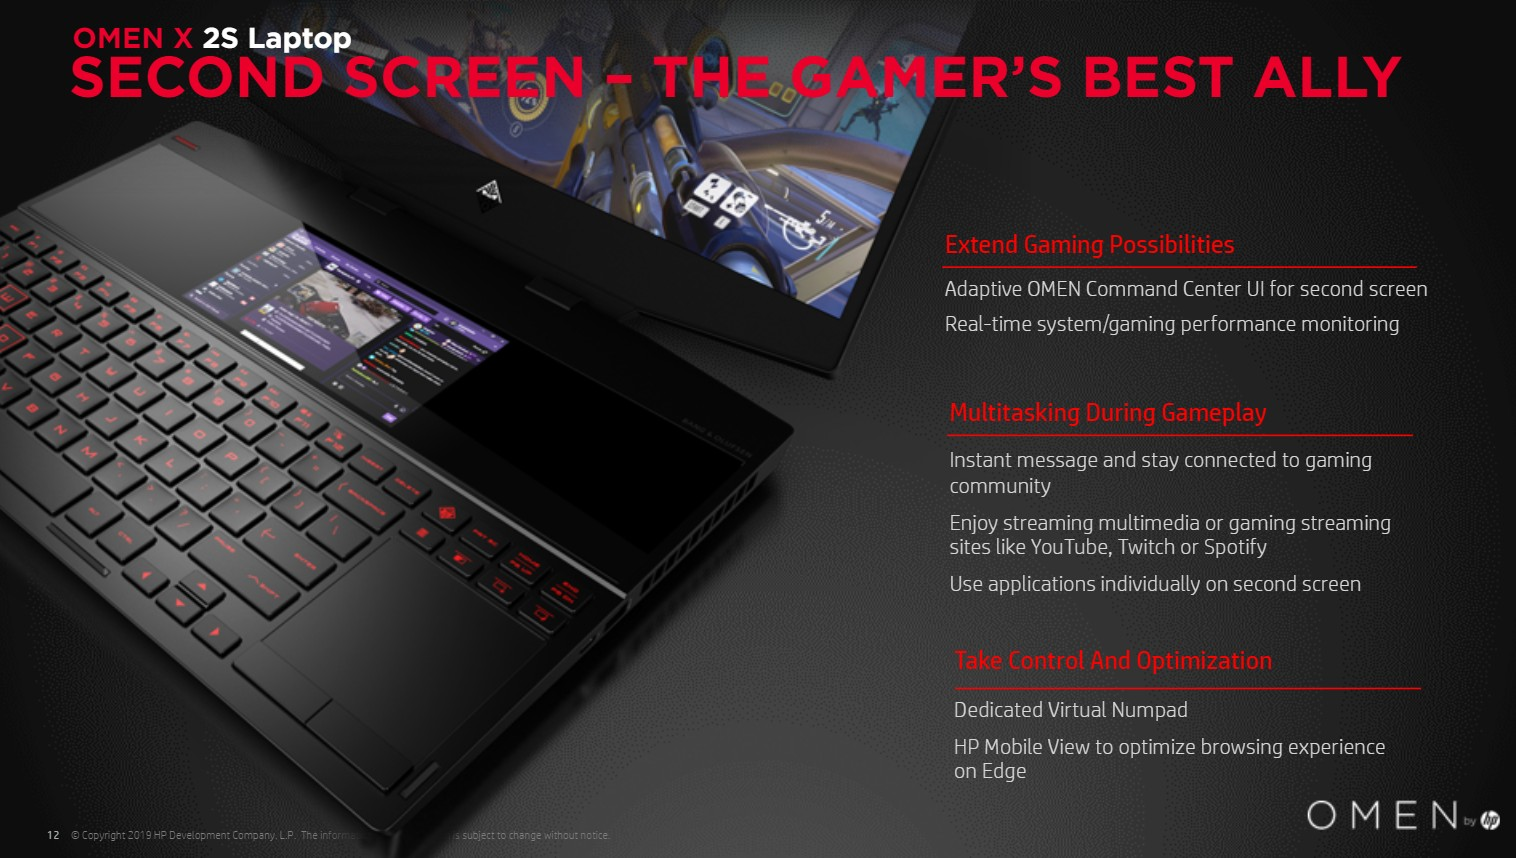 HP Omen X 2S gaming laptop has a second screen above the